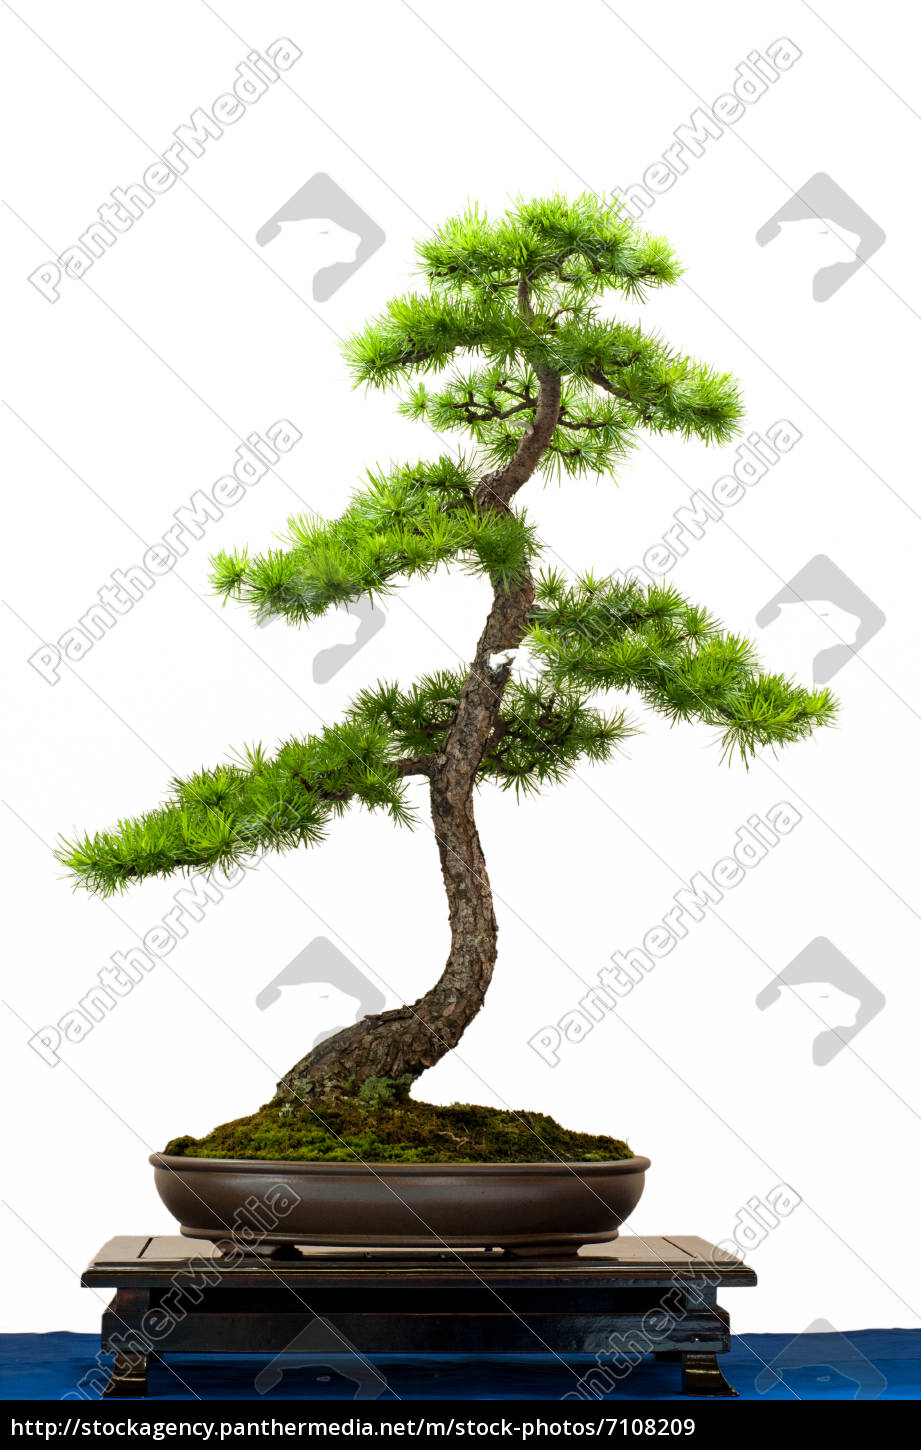 nadelbaum l rche als bonsai stockfoto 7108209 bildagentur panthermedia. Black Bedroom Furniture Sets. Home Design Ideas